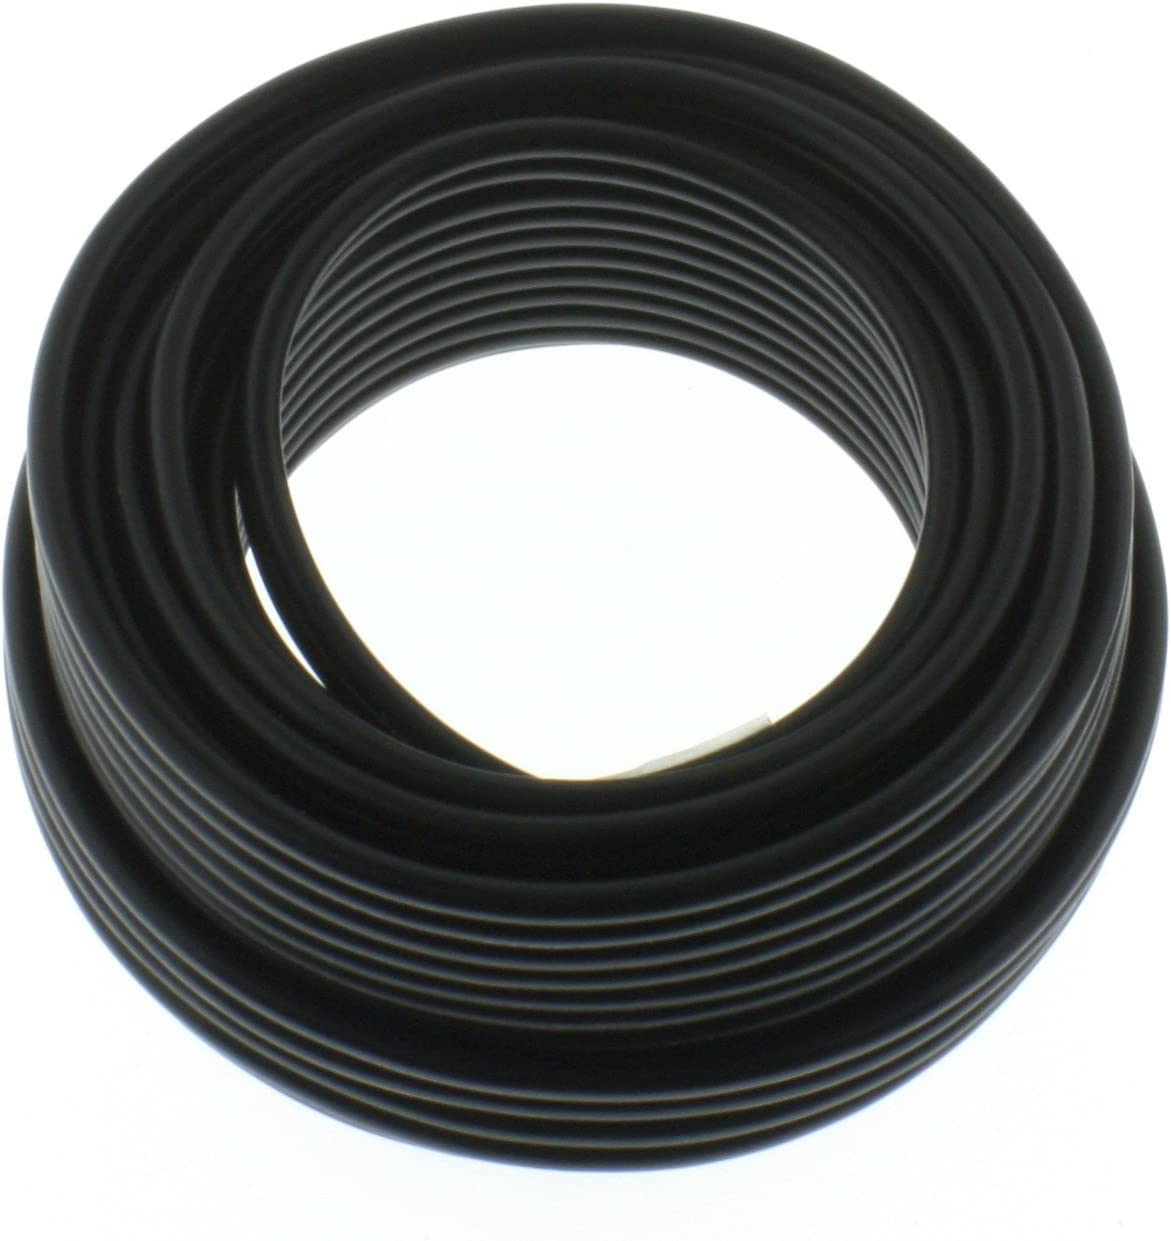 Box Cable Speaker Cable Round Installation Cable Audio Cable